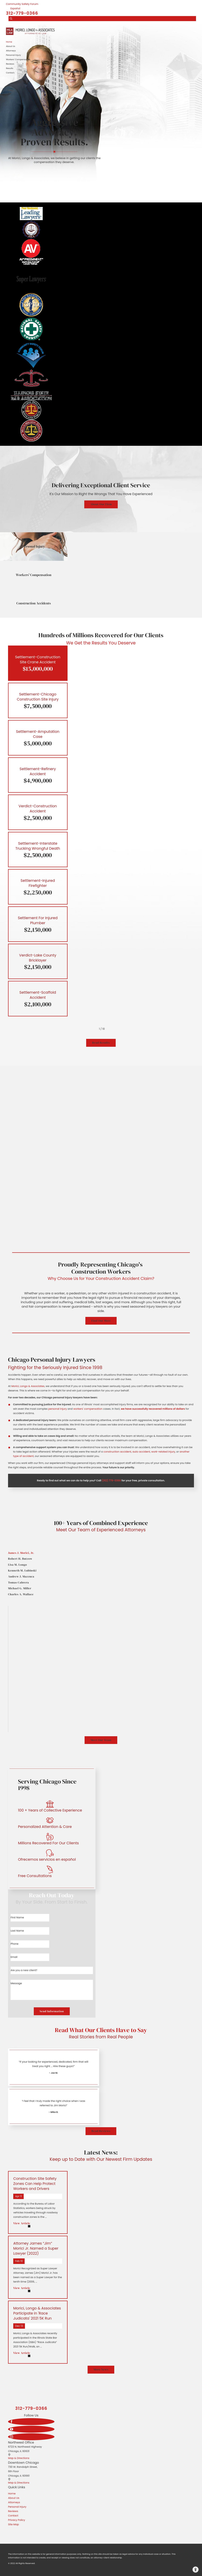 Morici, Figlioli & Associates - Chicago IL Lawyers